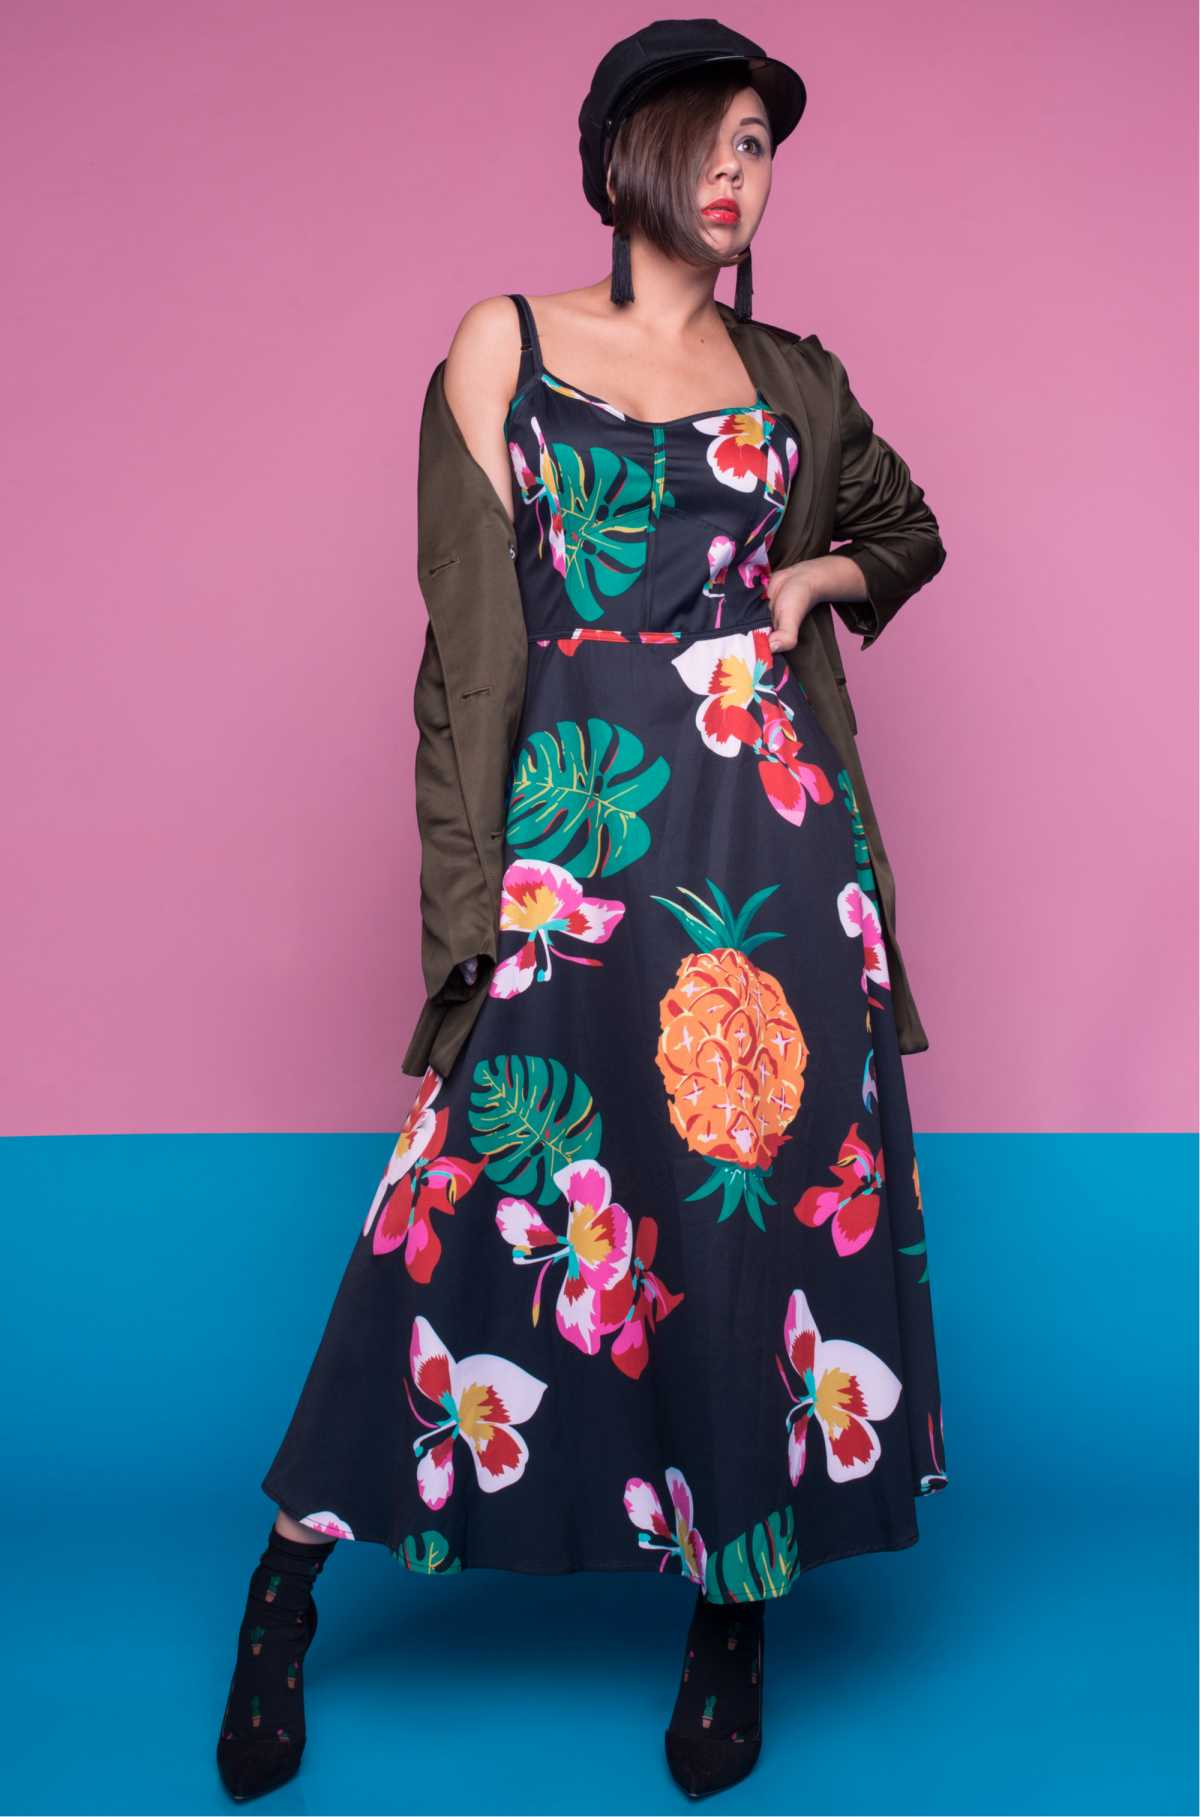 dress estampado com botas e jaqueta